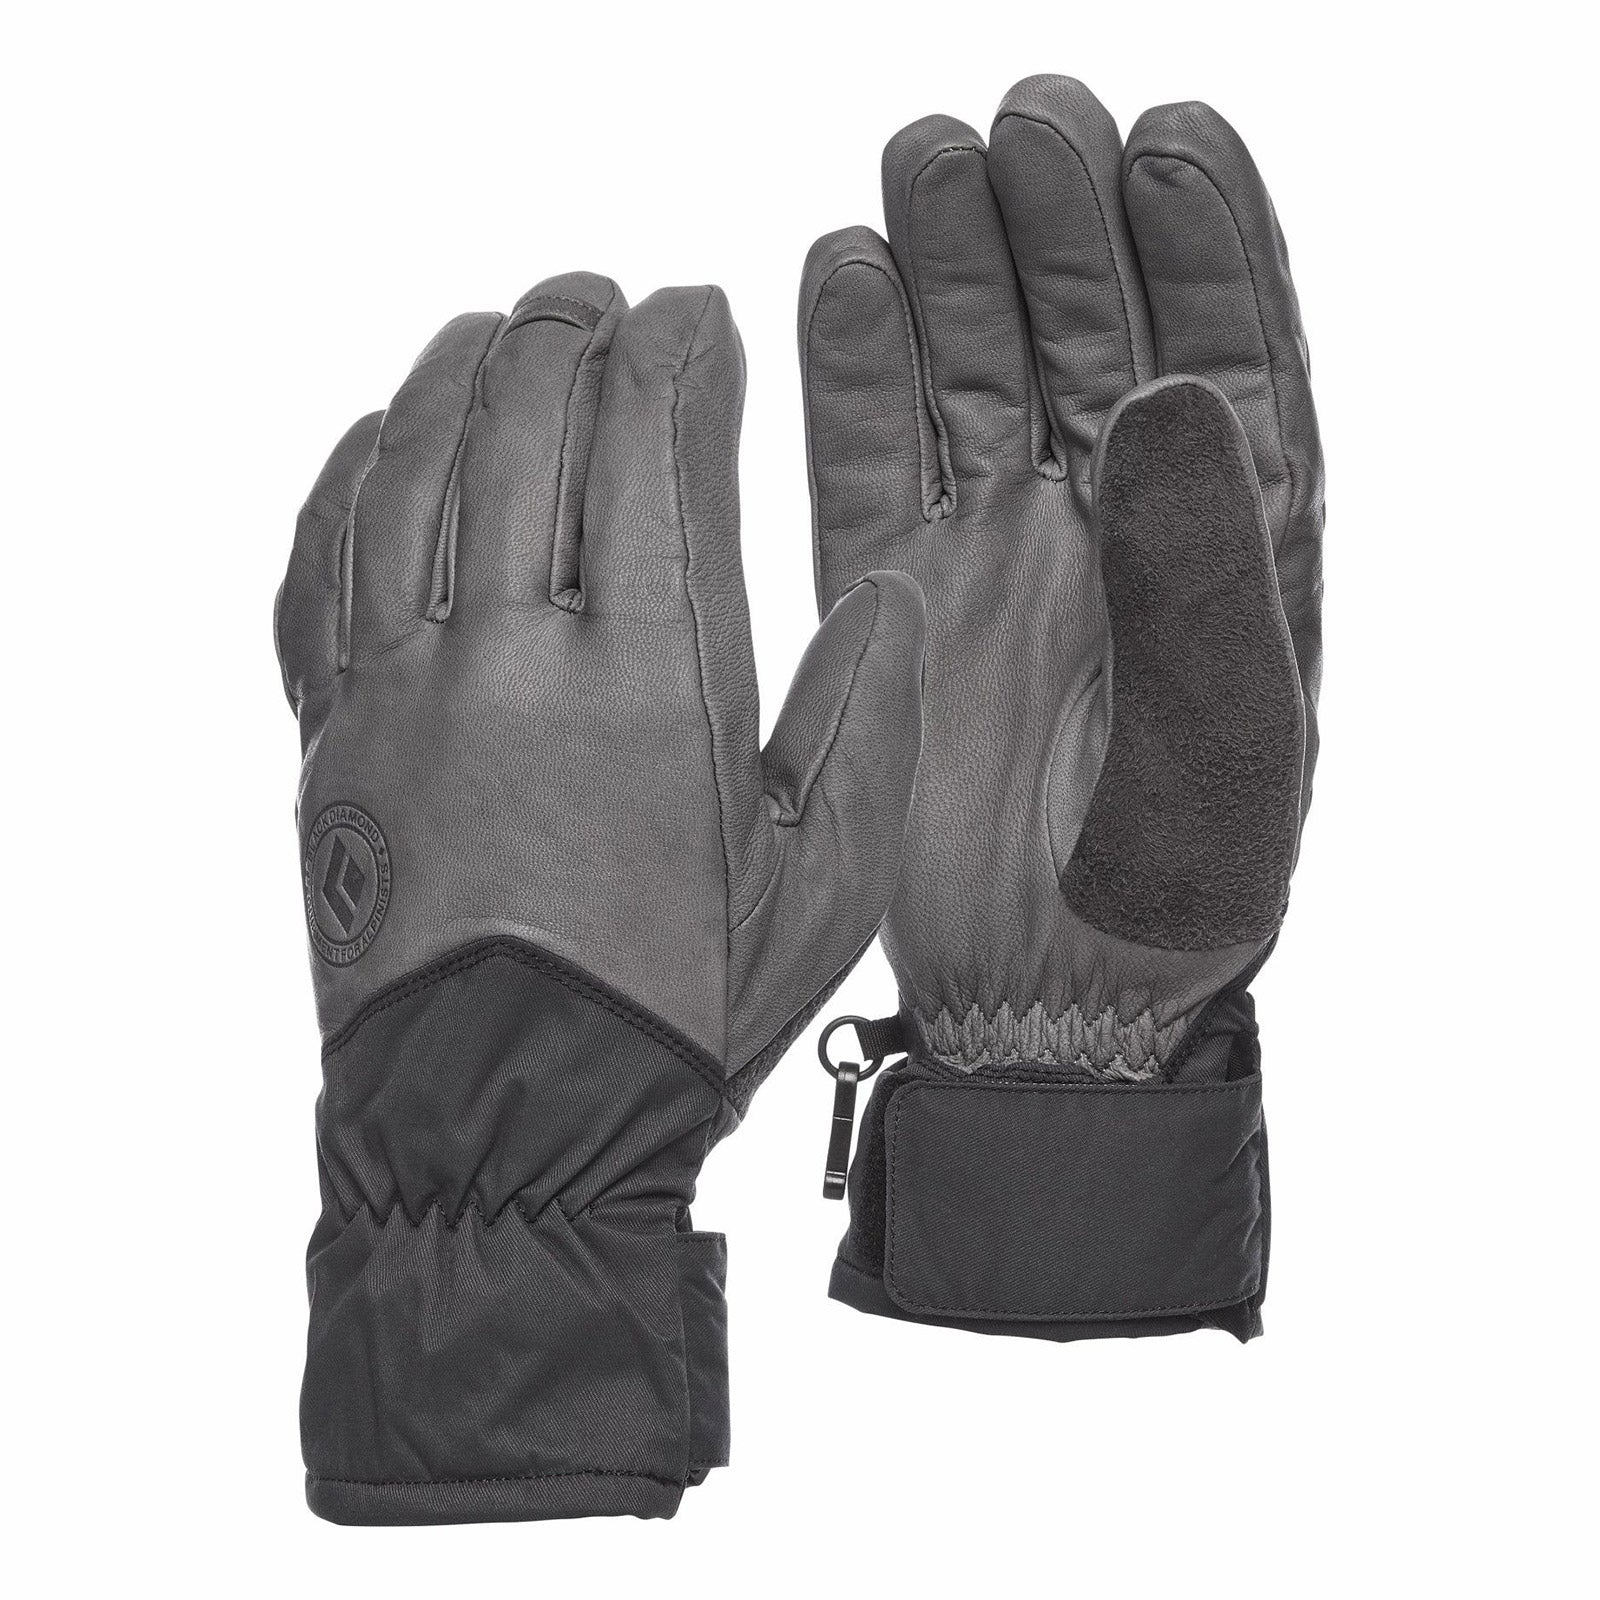 Black diamond tour gloves in ash